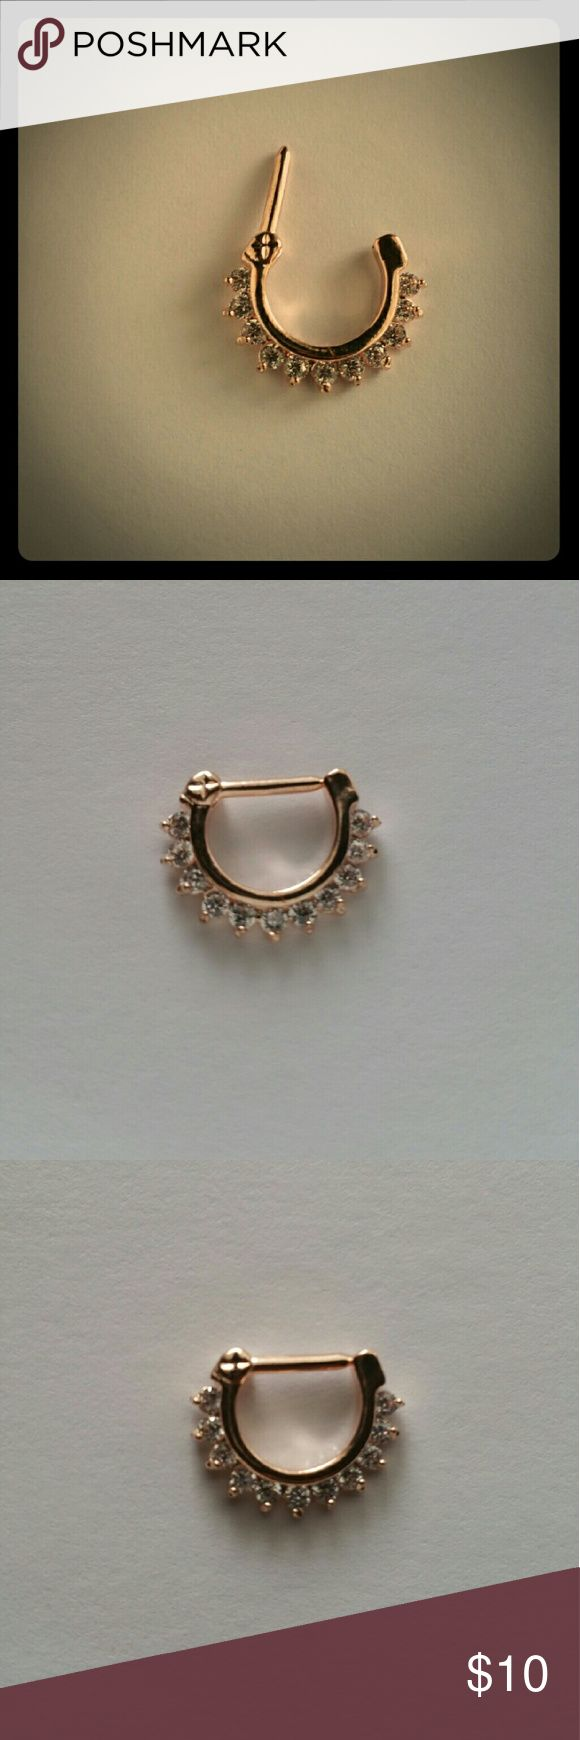 About nath nose ring mukku pudaka on pinterest jewellery gold nose - Beautiful Nose Ring Gold Like Color Nose Ring With Stones Like Diamonds Brand New